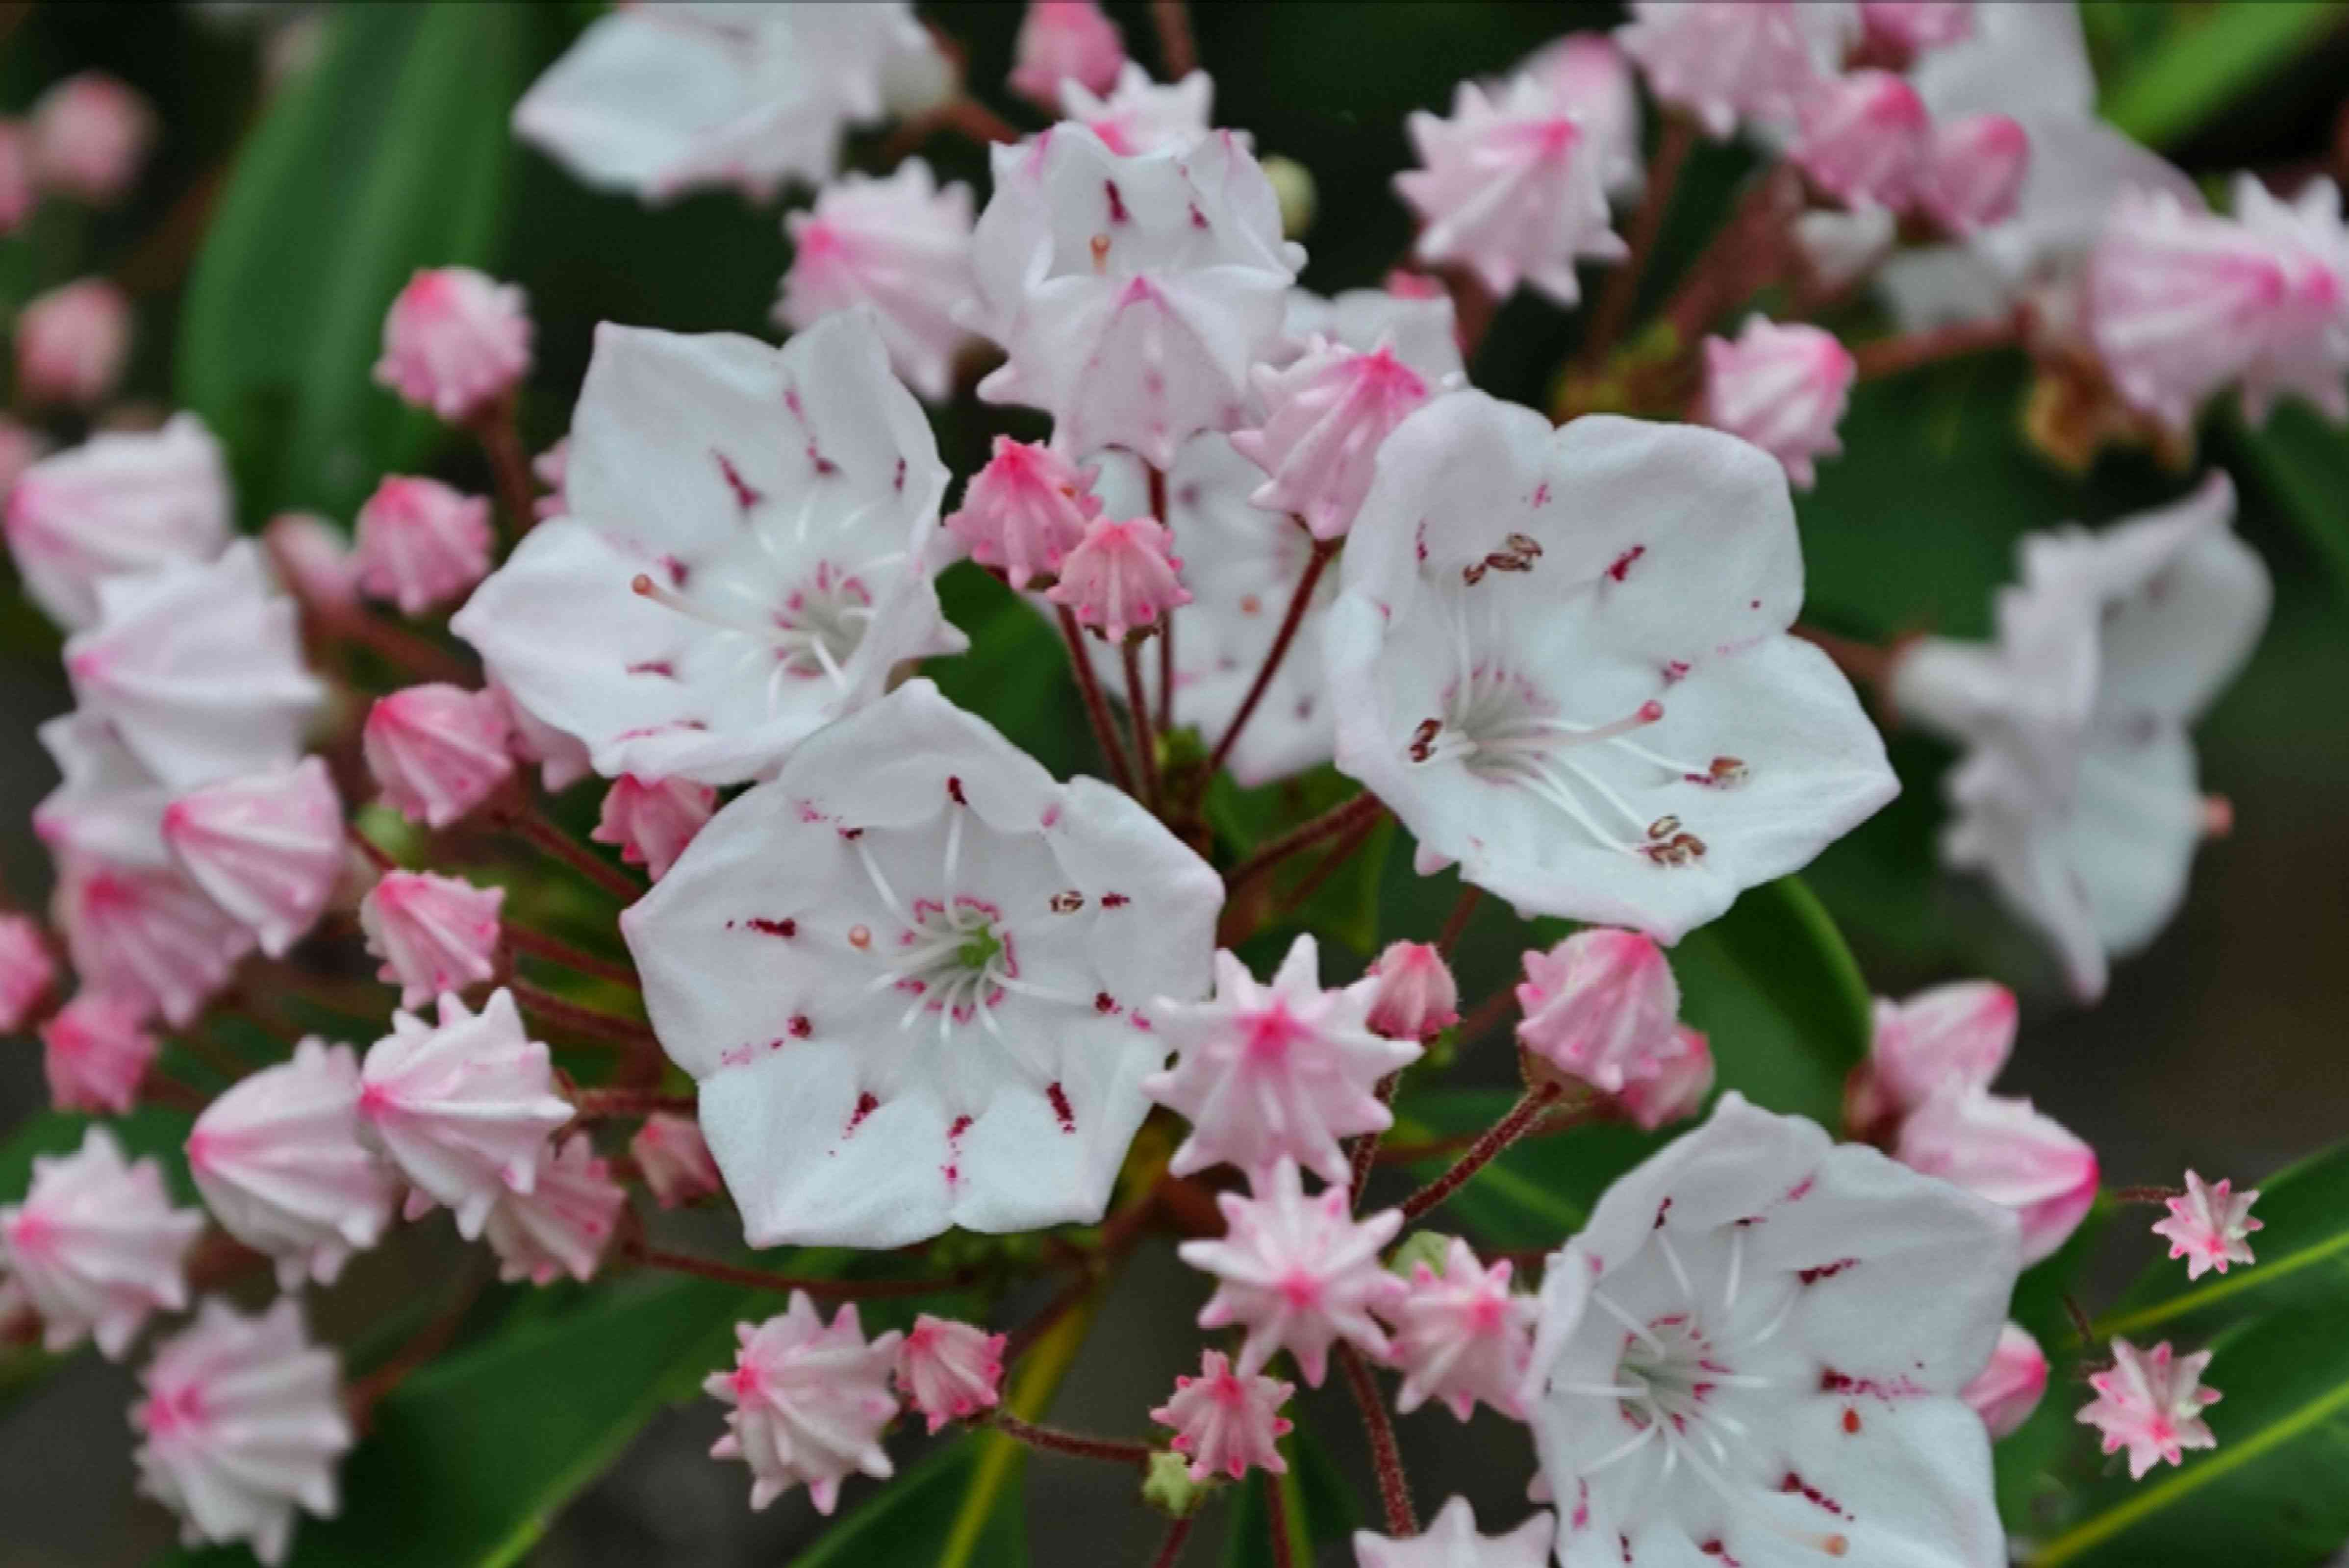 Mountain laurel shrub with clusters of small white flowers and pink buds closeup